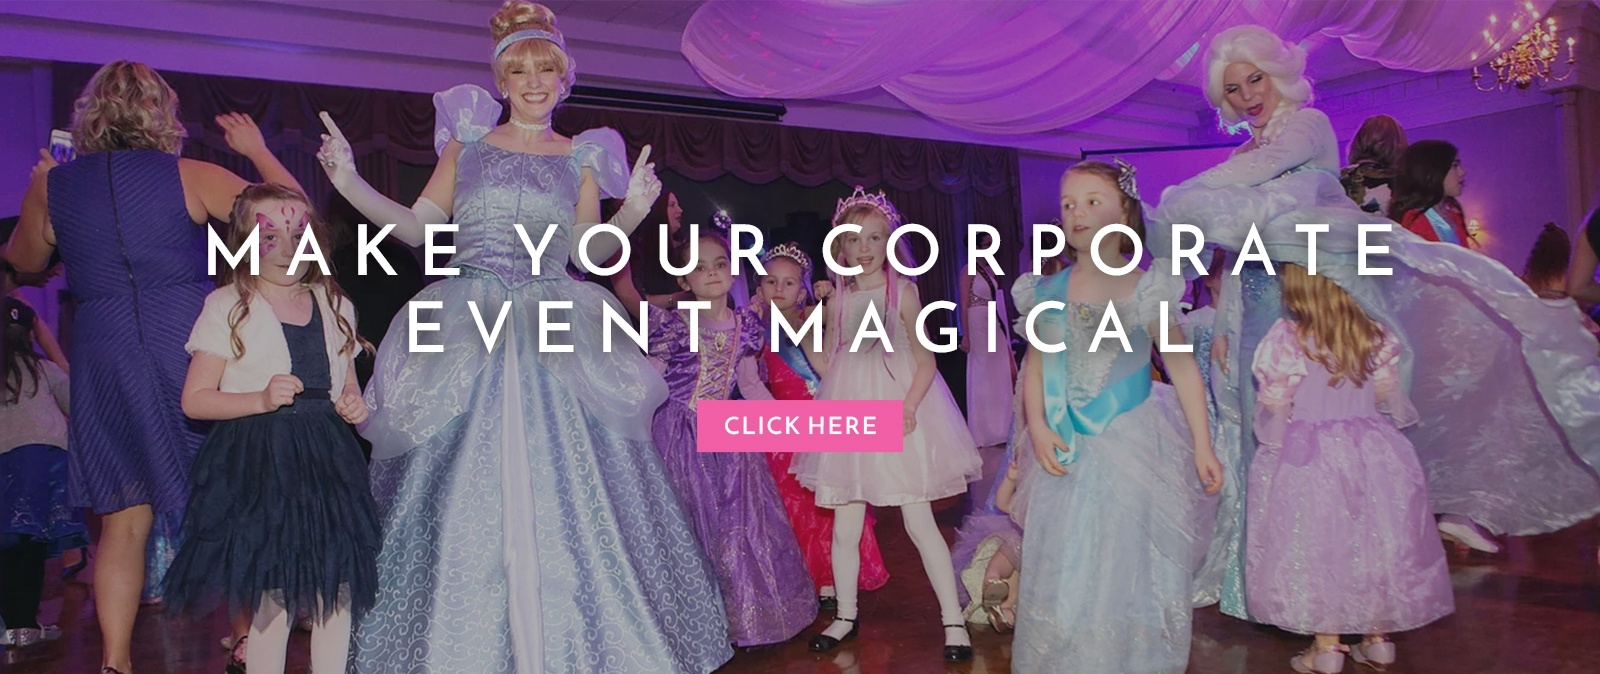 corporate events character entertainment toronto milton oshawa